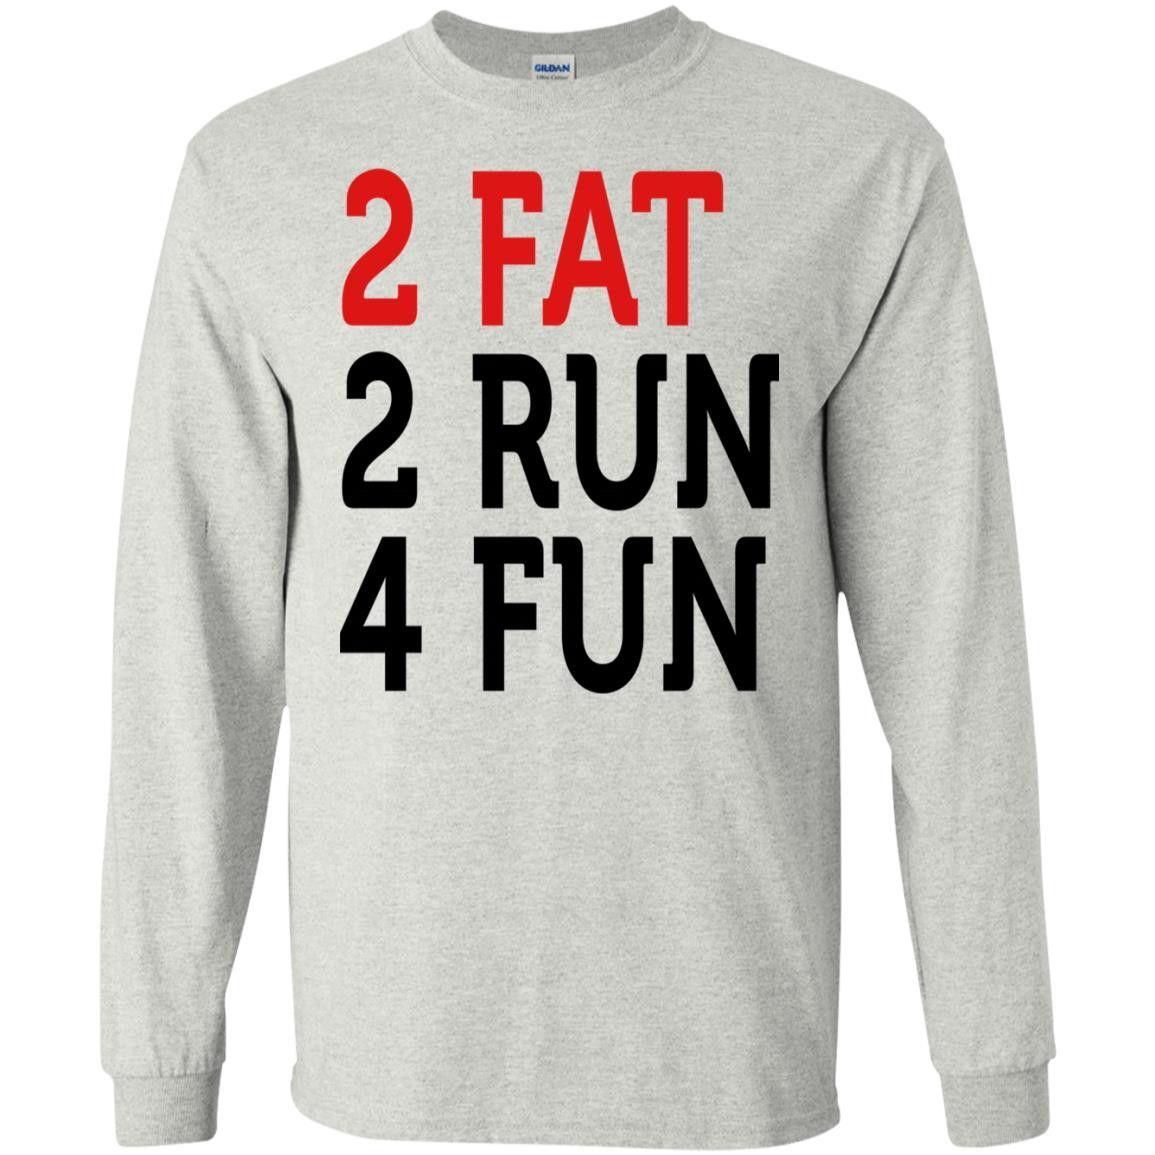 2 FAT 2 RUN 4 FUN 2C KIDS SHIRT G240 Gildan LS Ultra Cotton T-Shirt